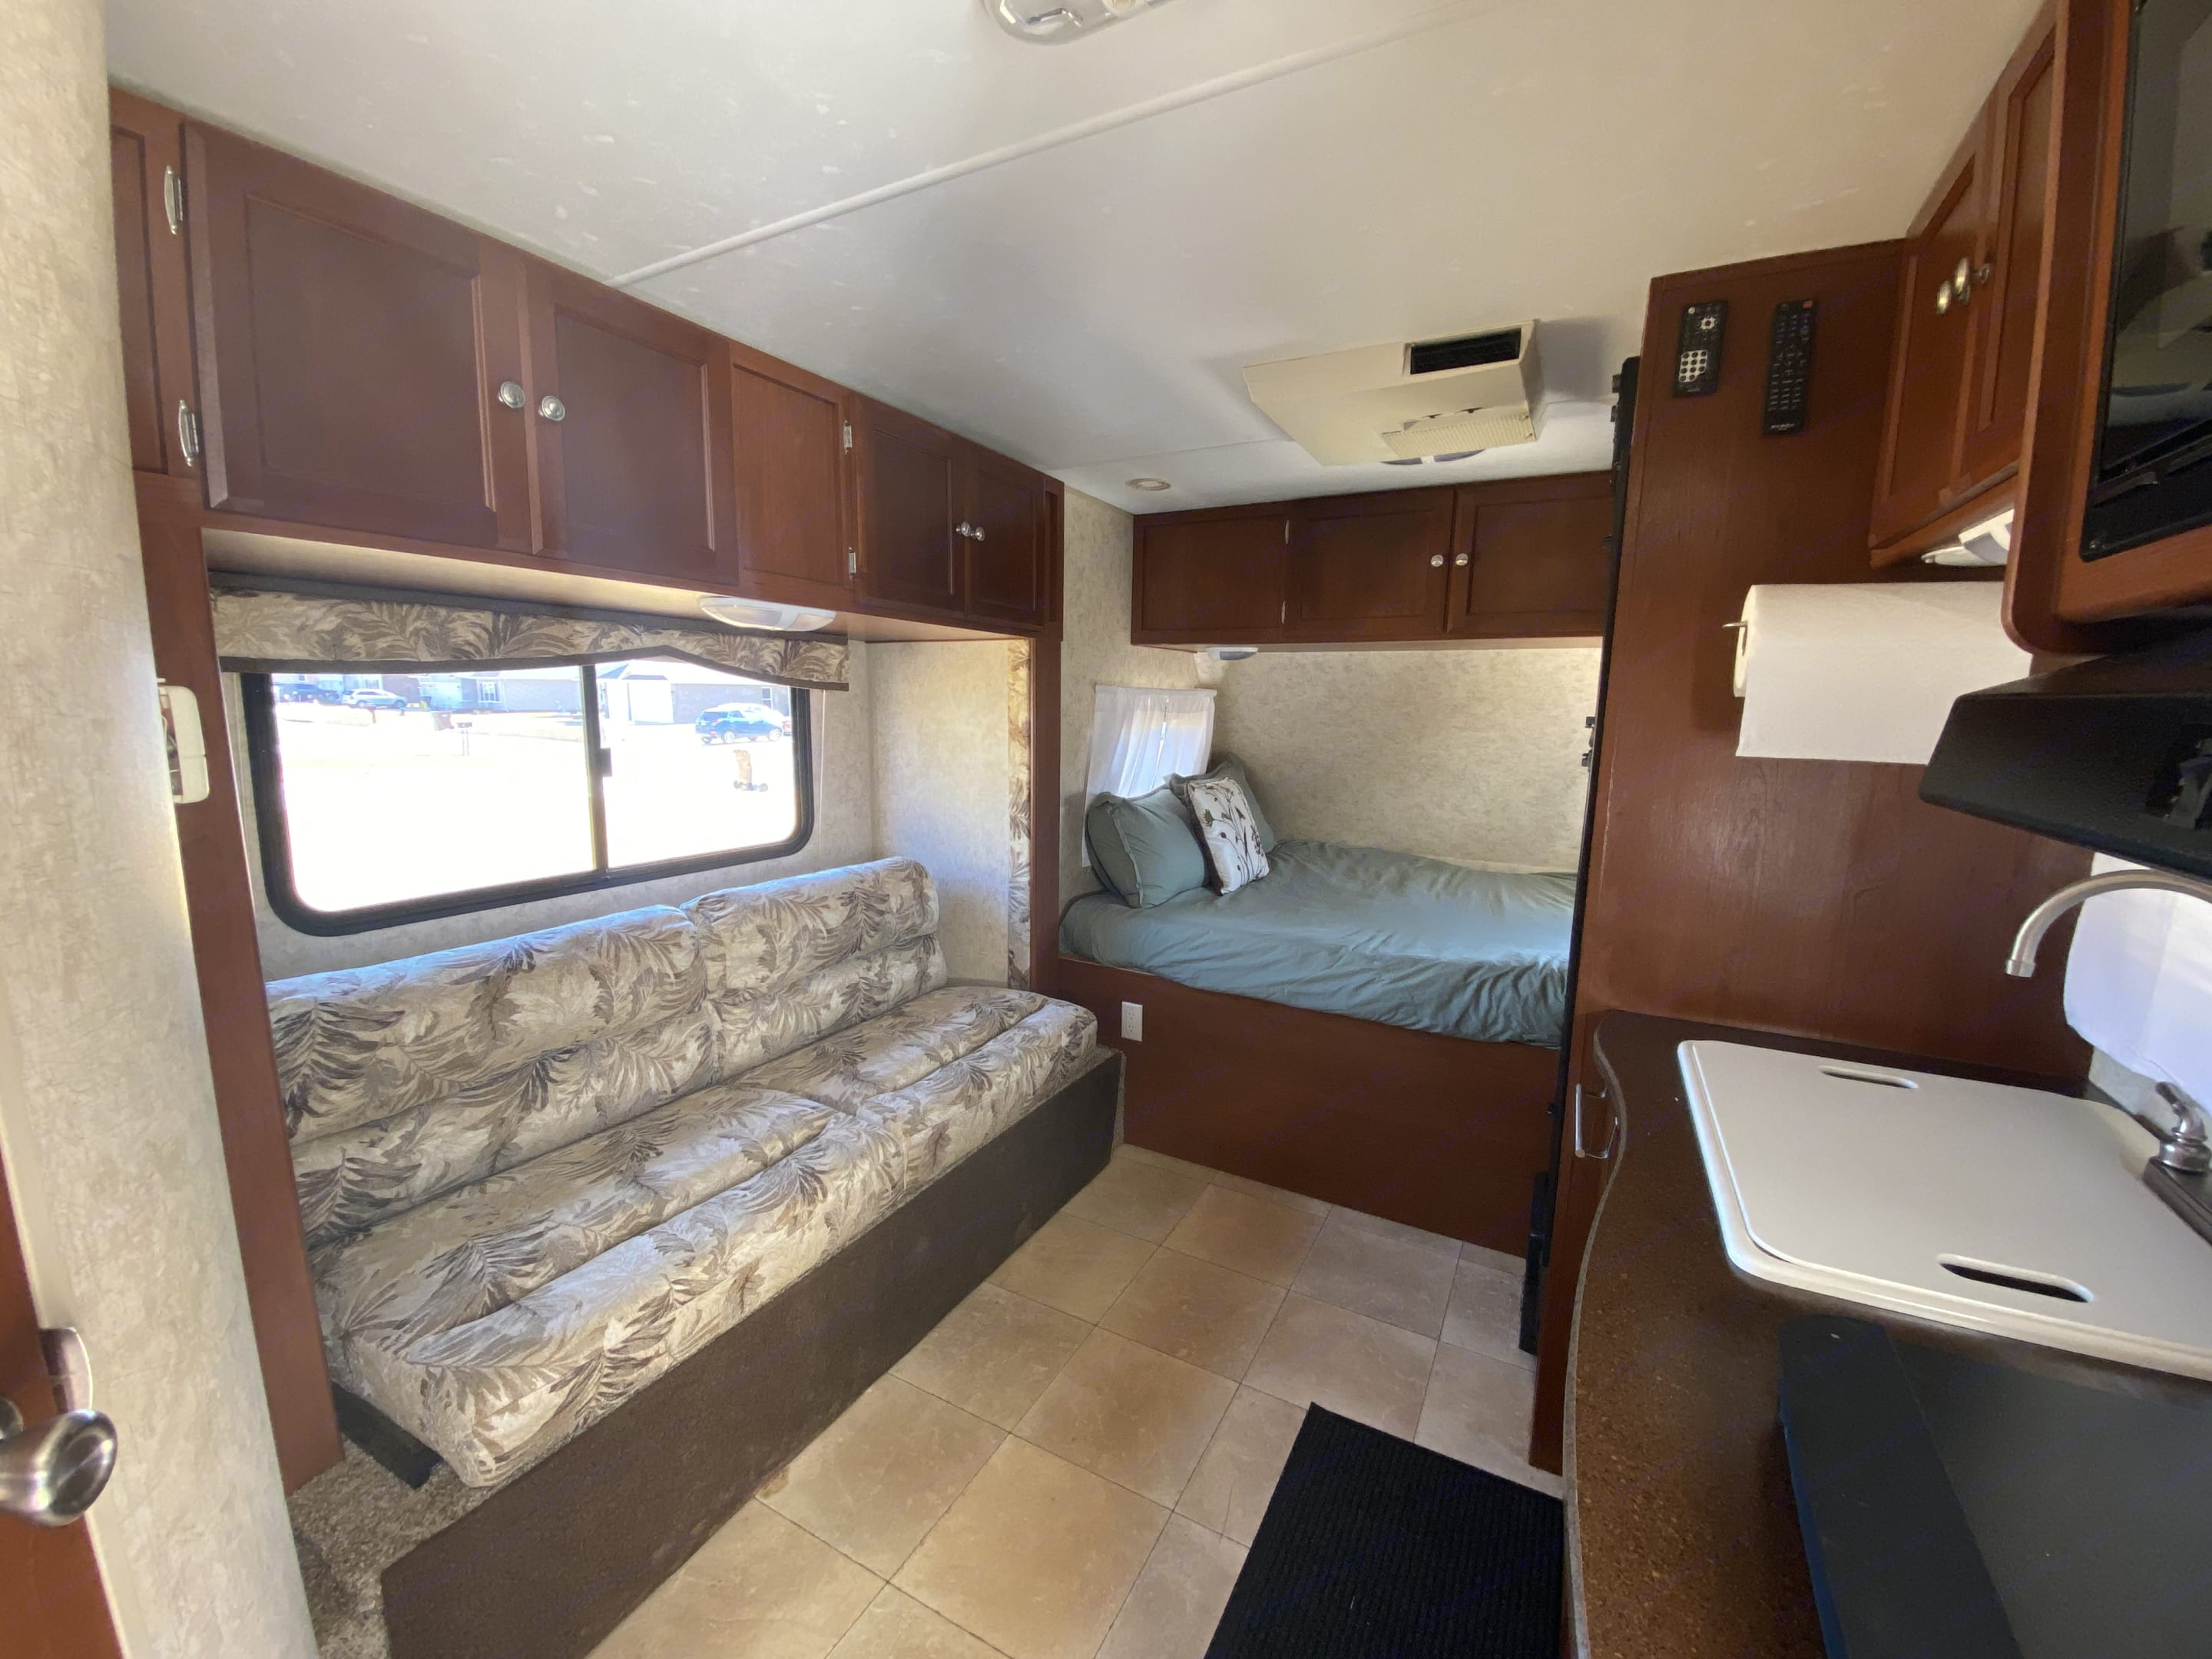 Foldout couch, queen bed up front, kitchen on the right. Dutchmen Kodiak 2011